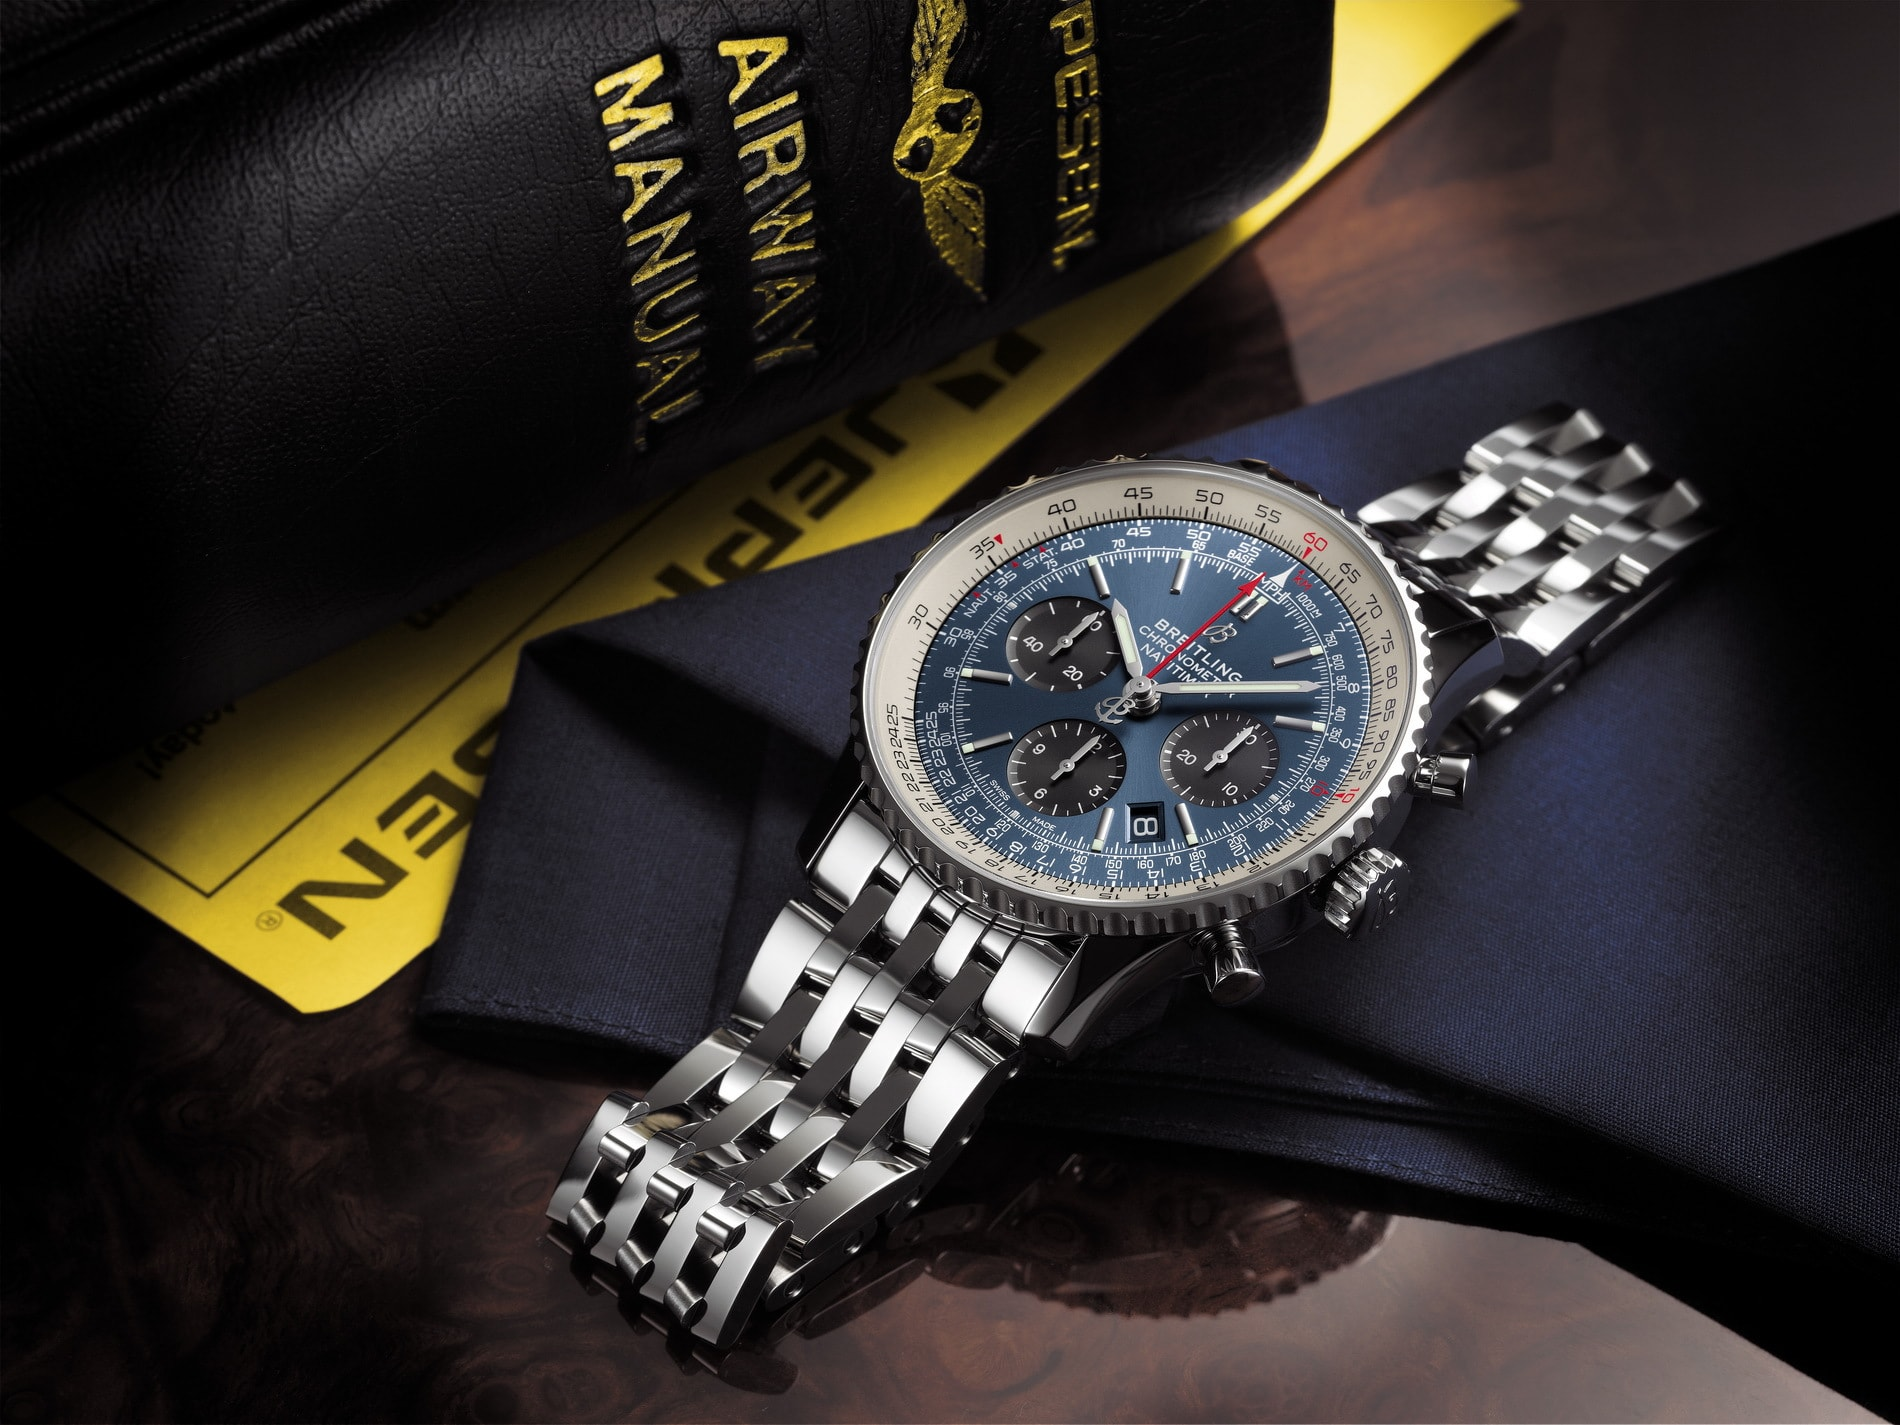 Breitlings Navitimer 1 Automatic 38 Is The Perfect Watch For Men With Small Wrists